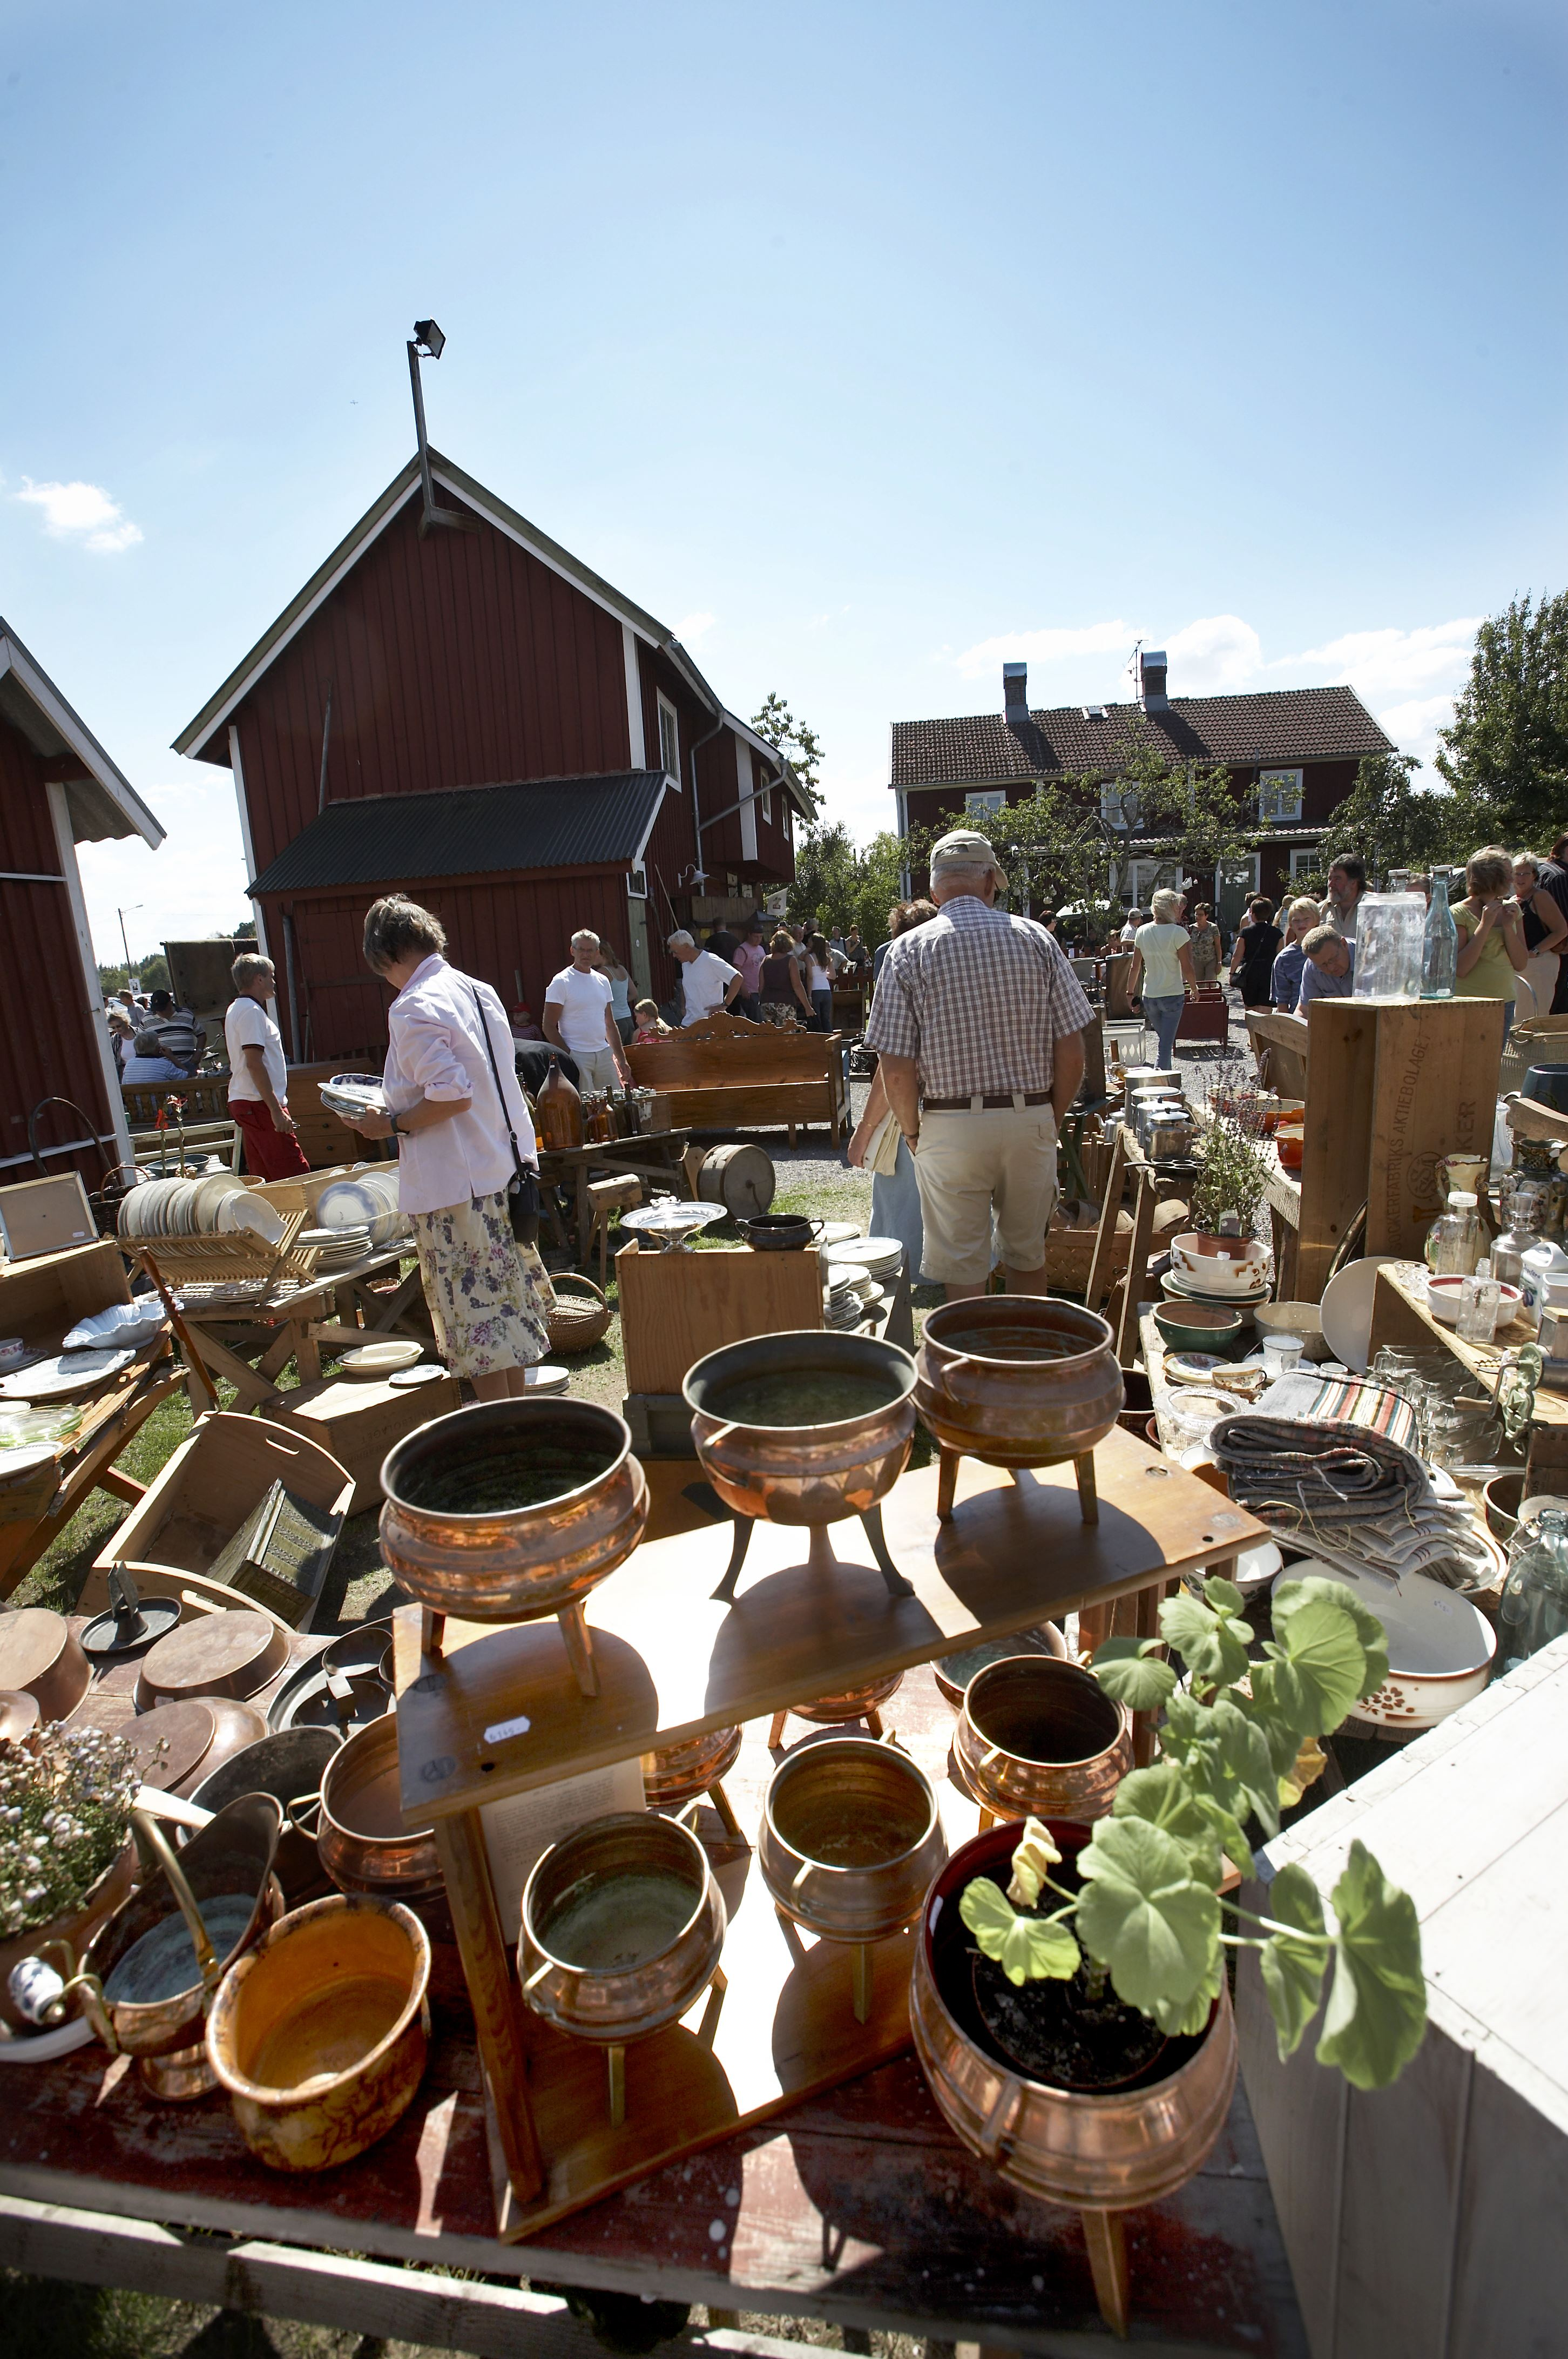 Östregårds antique and flea market